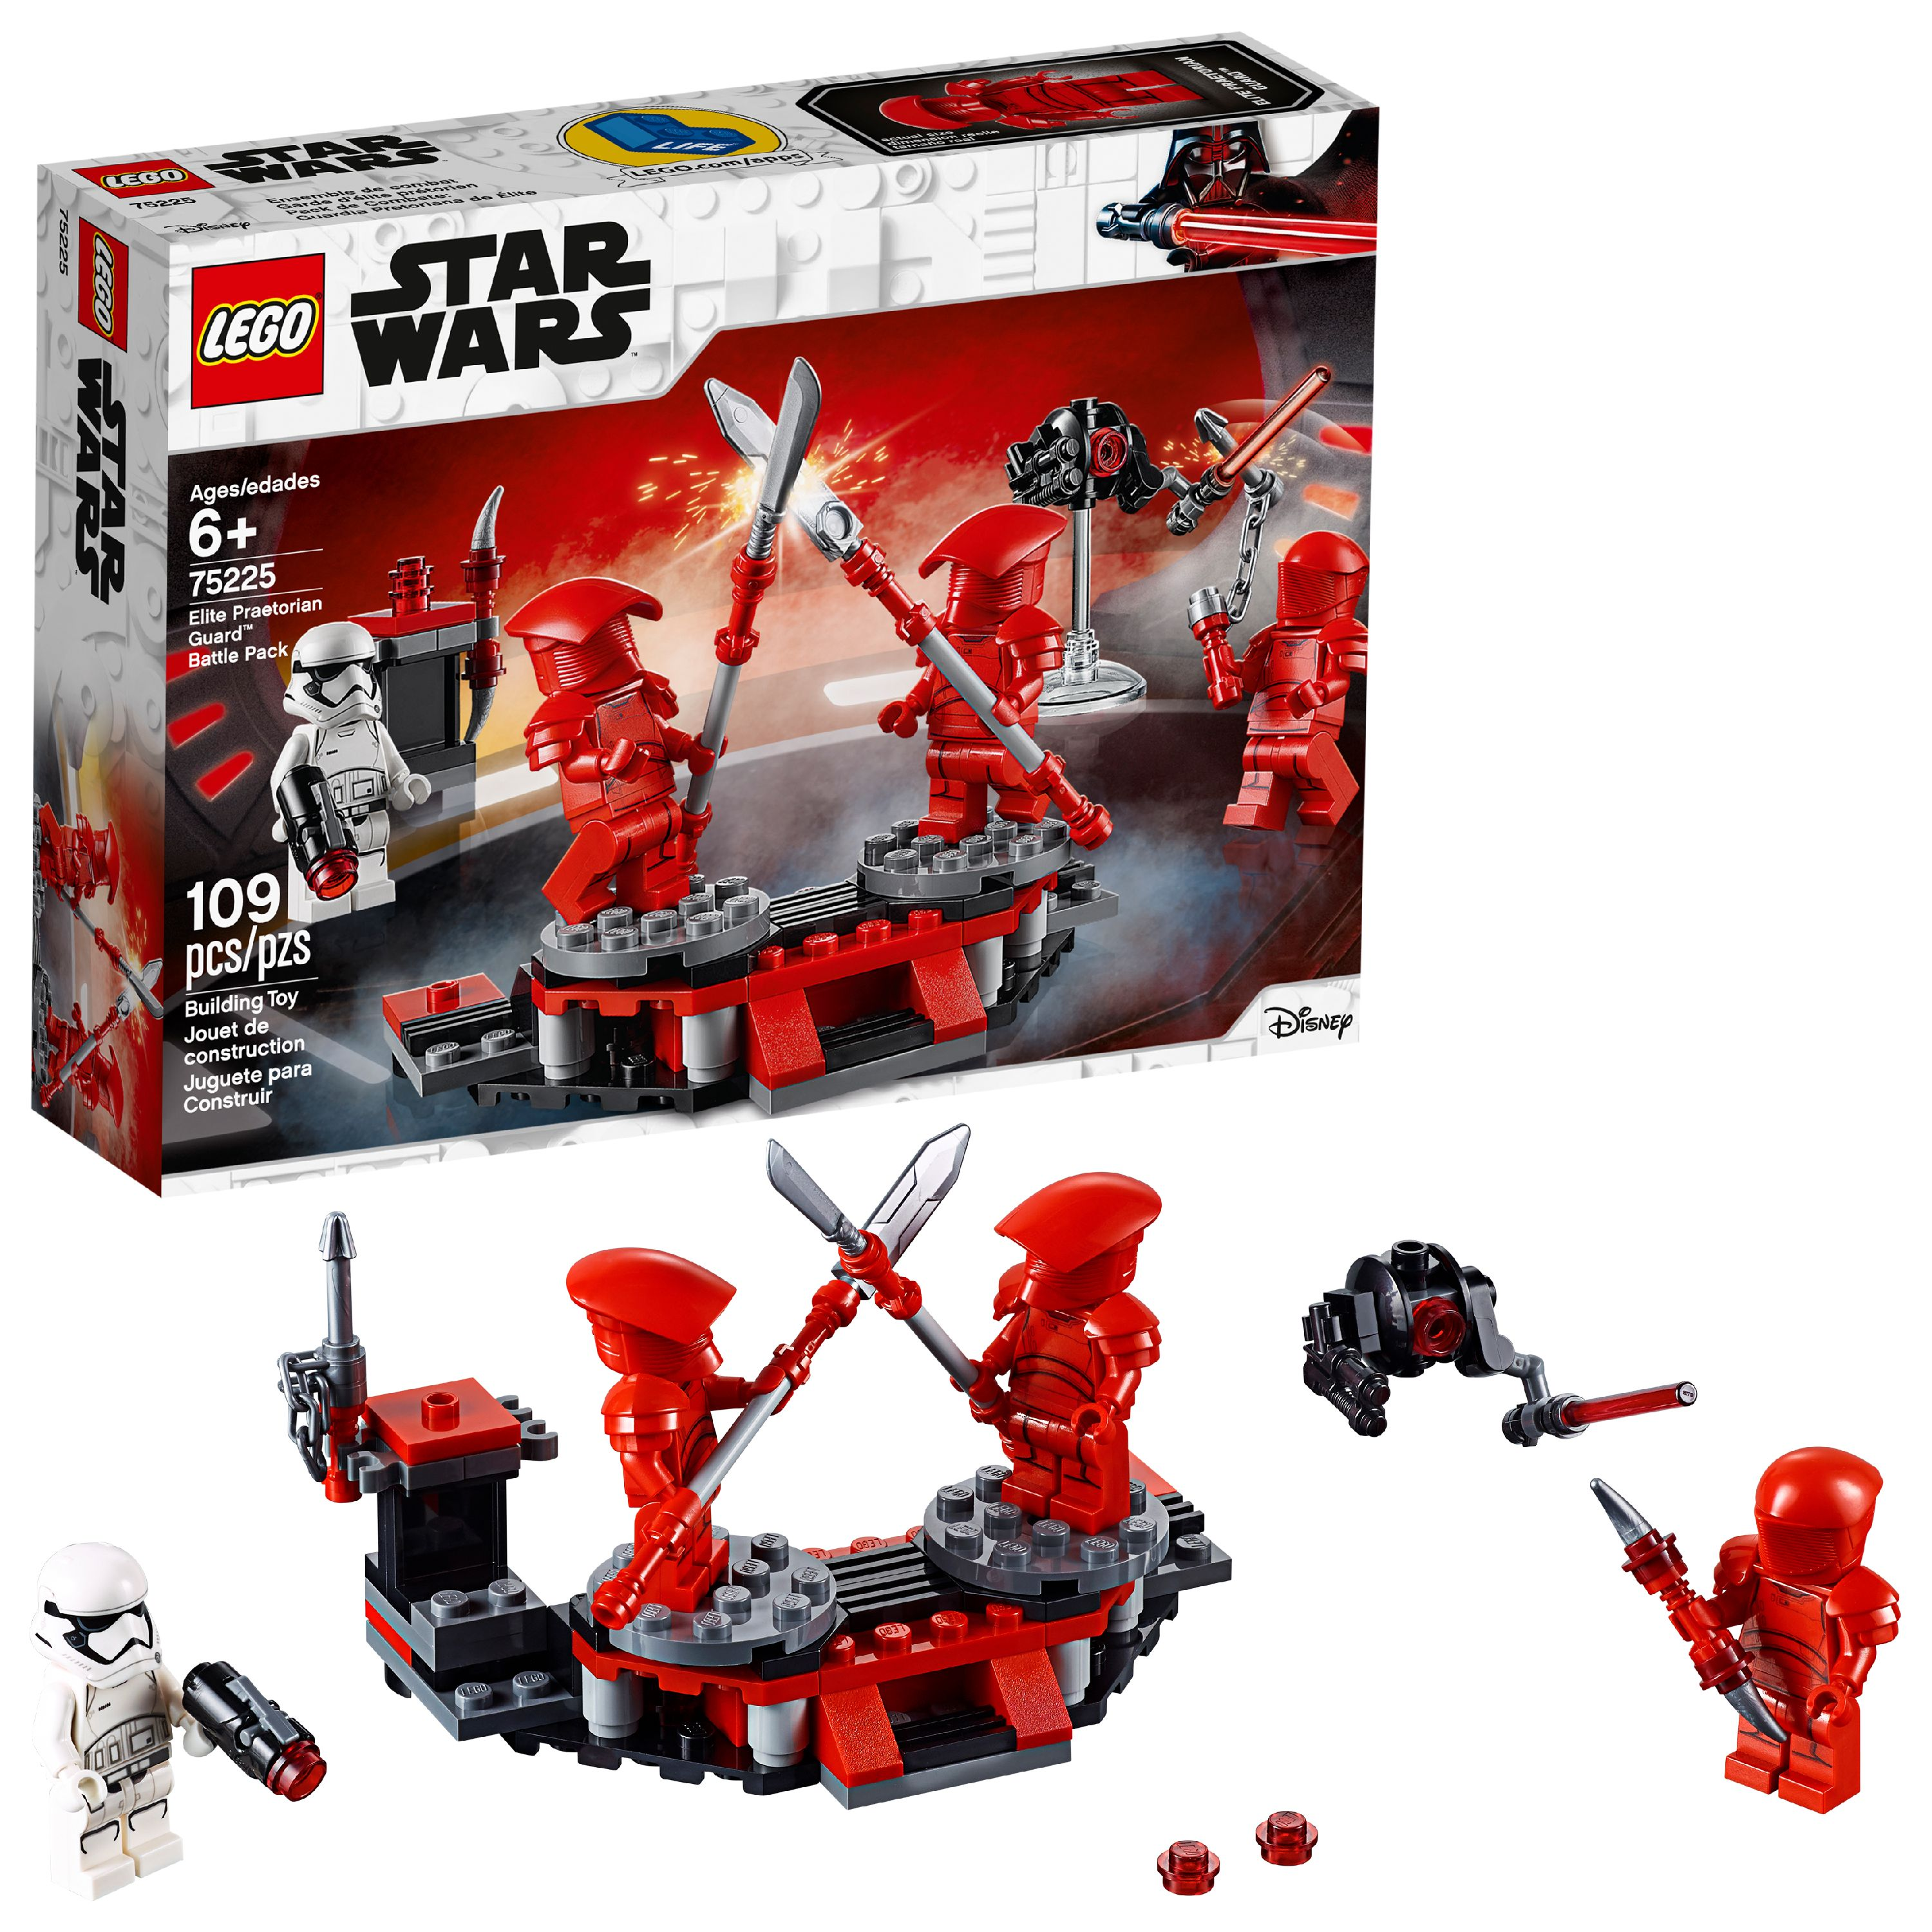 LEGO Star Wars TM Elite Praetorian Guard Battle Pack 75225